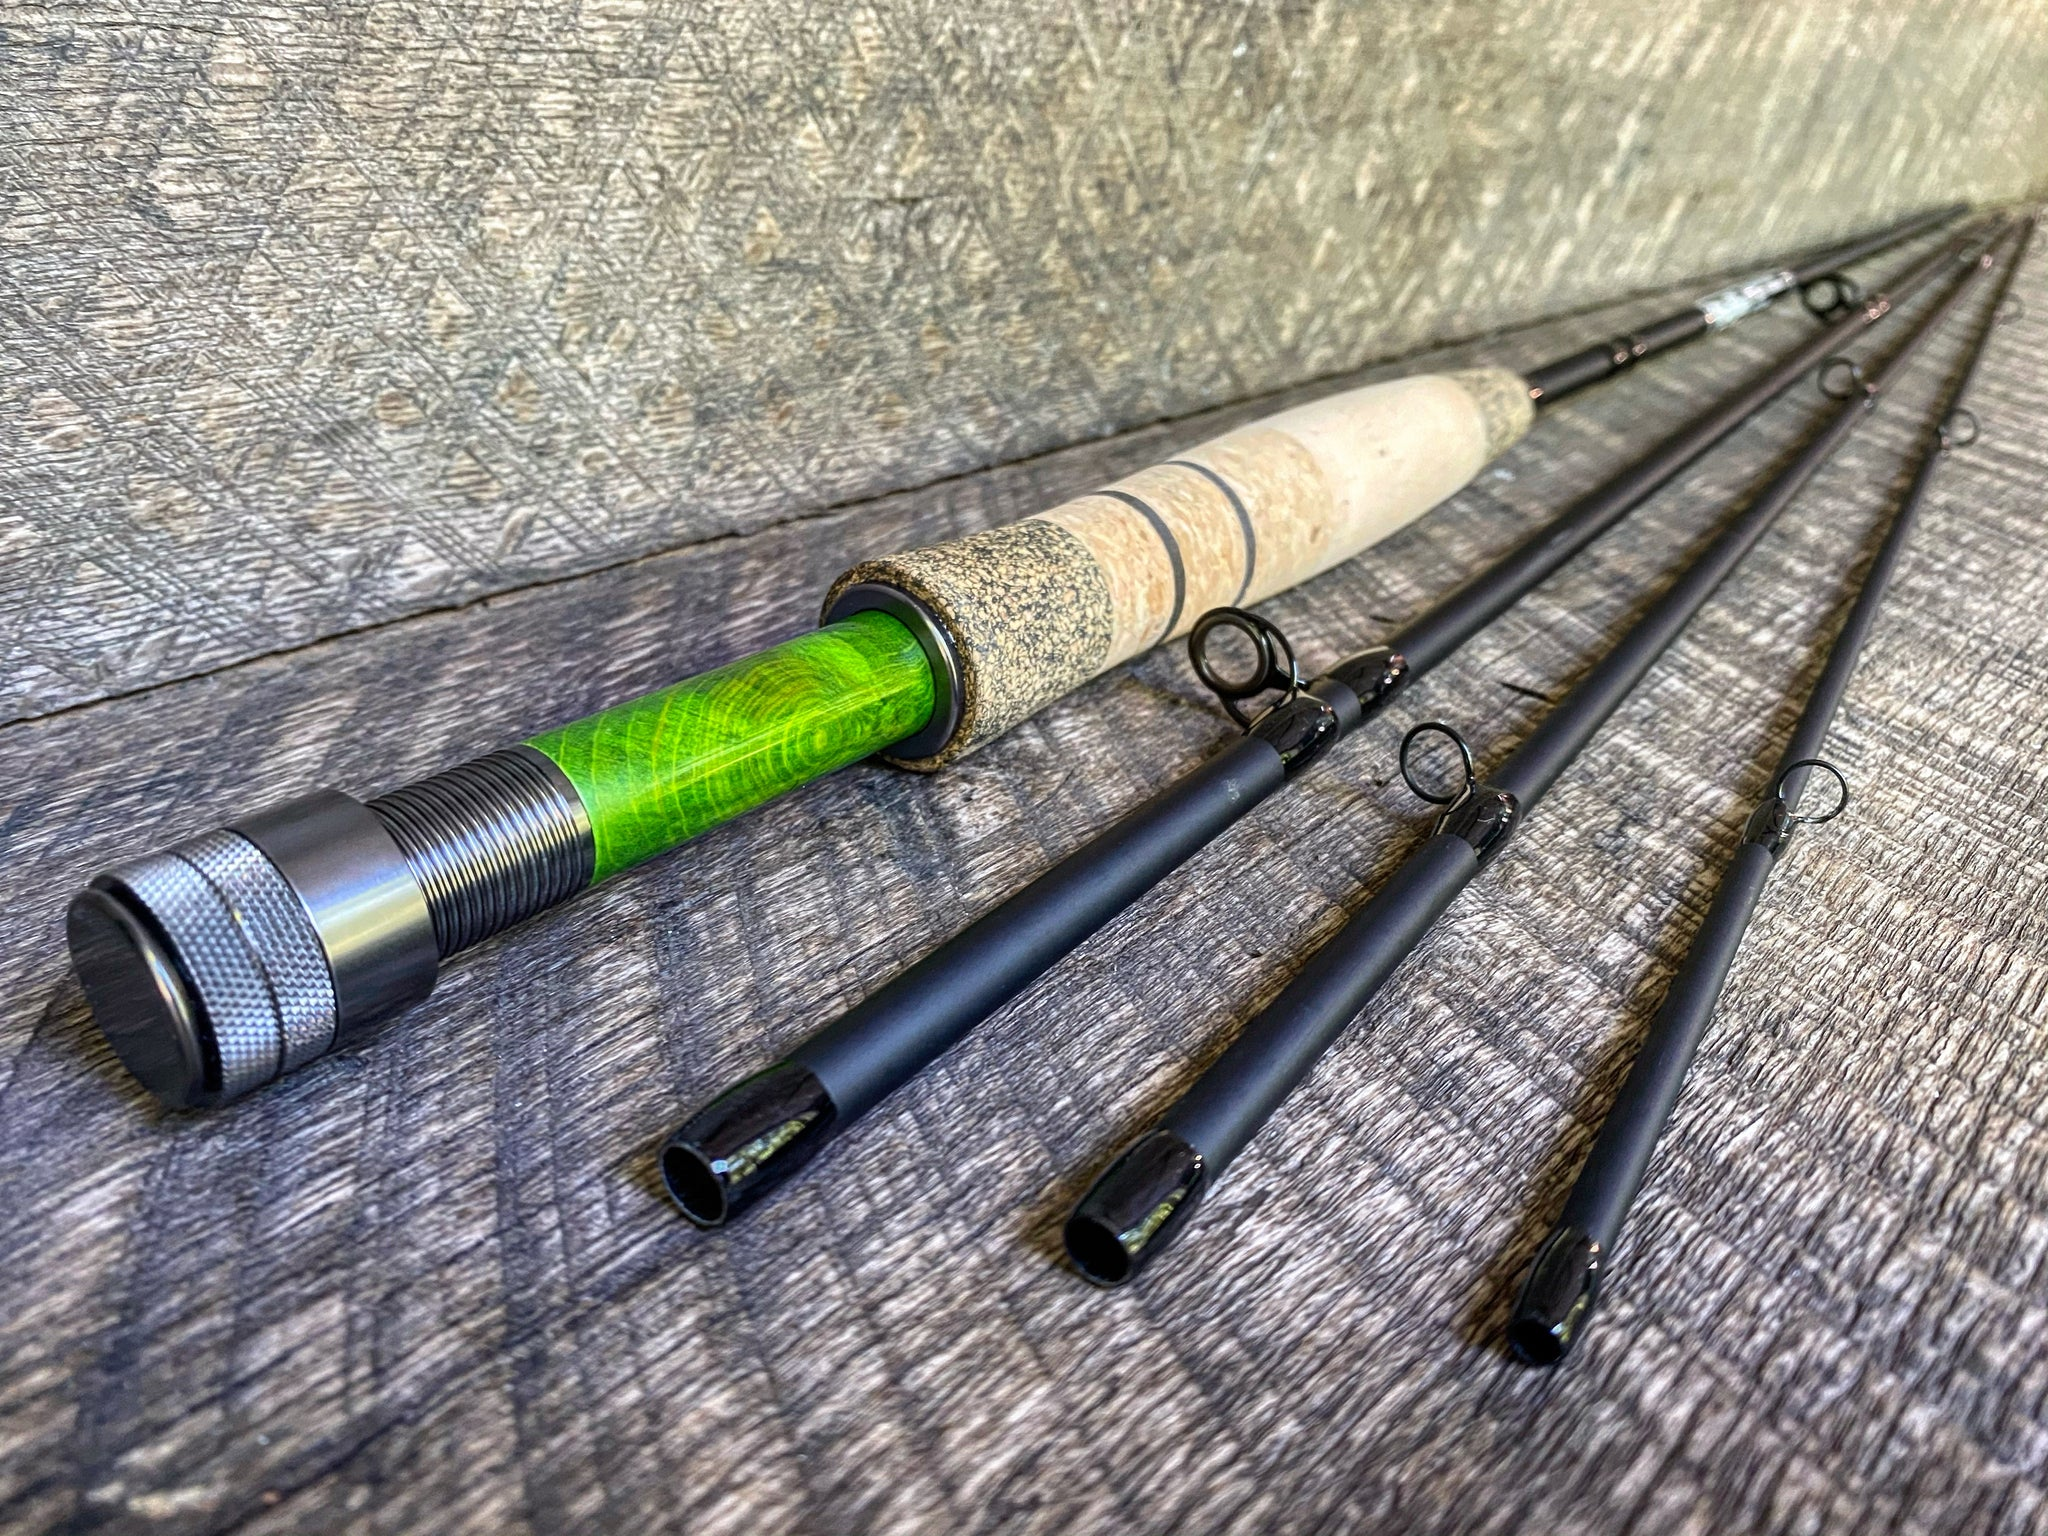 Midnight Special - 5wt - 9' - #2212 Chernobyl Green Gunmetal Blackout